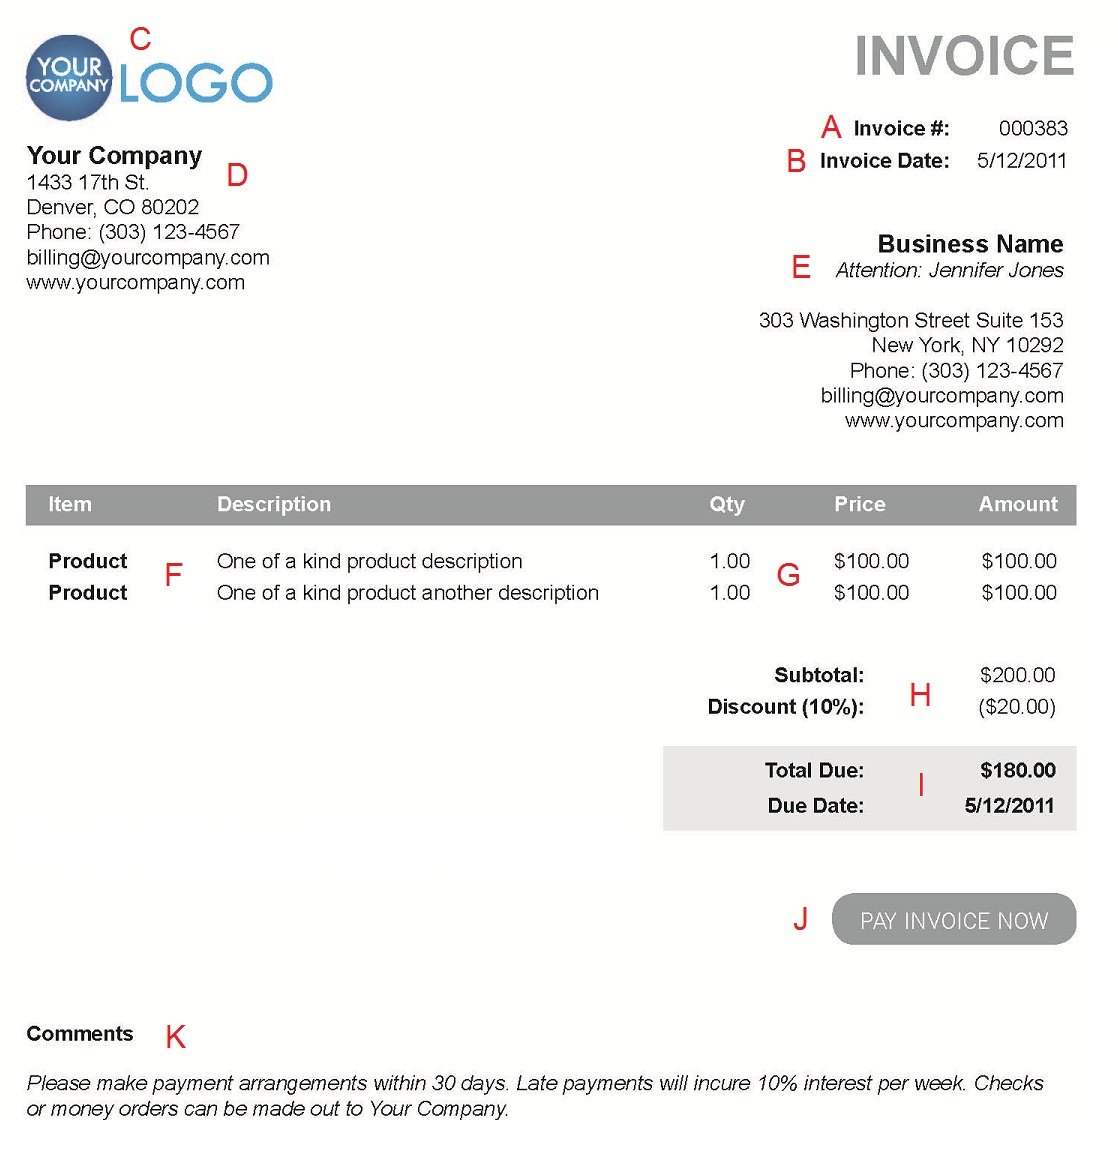 Aaaaeroincus  Outstanding The  Different Sections Of An Electronic Payment Invoice With Hot A  With Captivating How To Send An Invoice For Freelance Work Also Performa Of Invoice In Addition Final Invoice Sample And Caricom Invoice As Well As Painting Invoice Additionally Honda Civic Ex Invoice Price From Paysimplecom With Aaaaeroincus  Hot The  Different Sections Of An Electronic Payment Invoice With Captivating A  And Outstanding How To Send An Invoice For Freelance Work Also Performa Of Invoice In Addition Final Invoice Sample From Paysimplecom